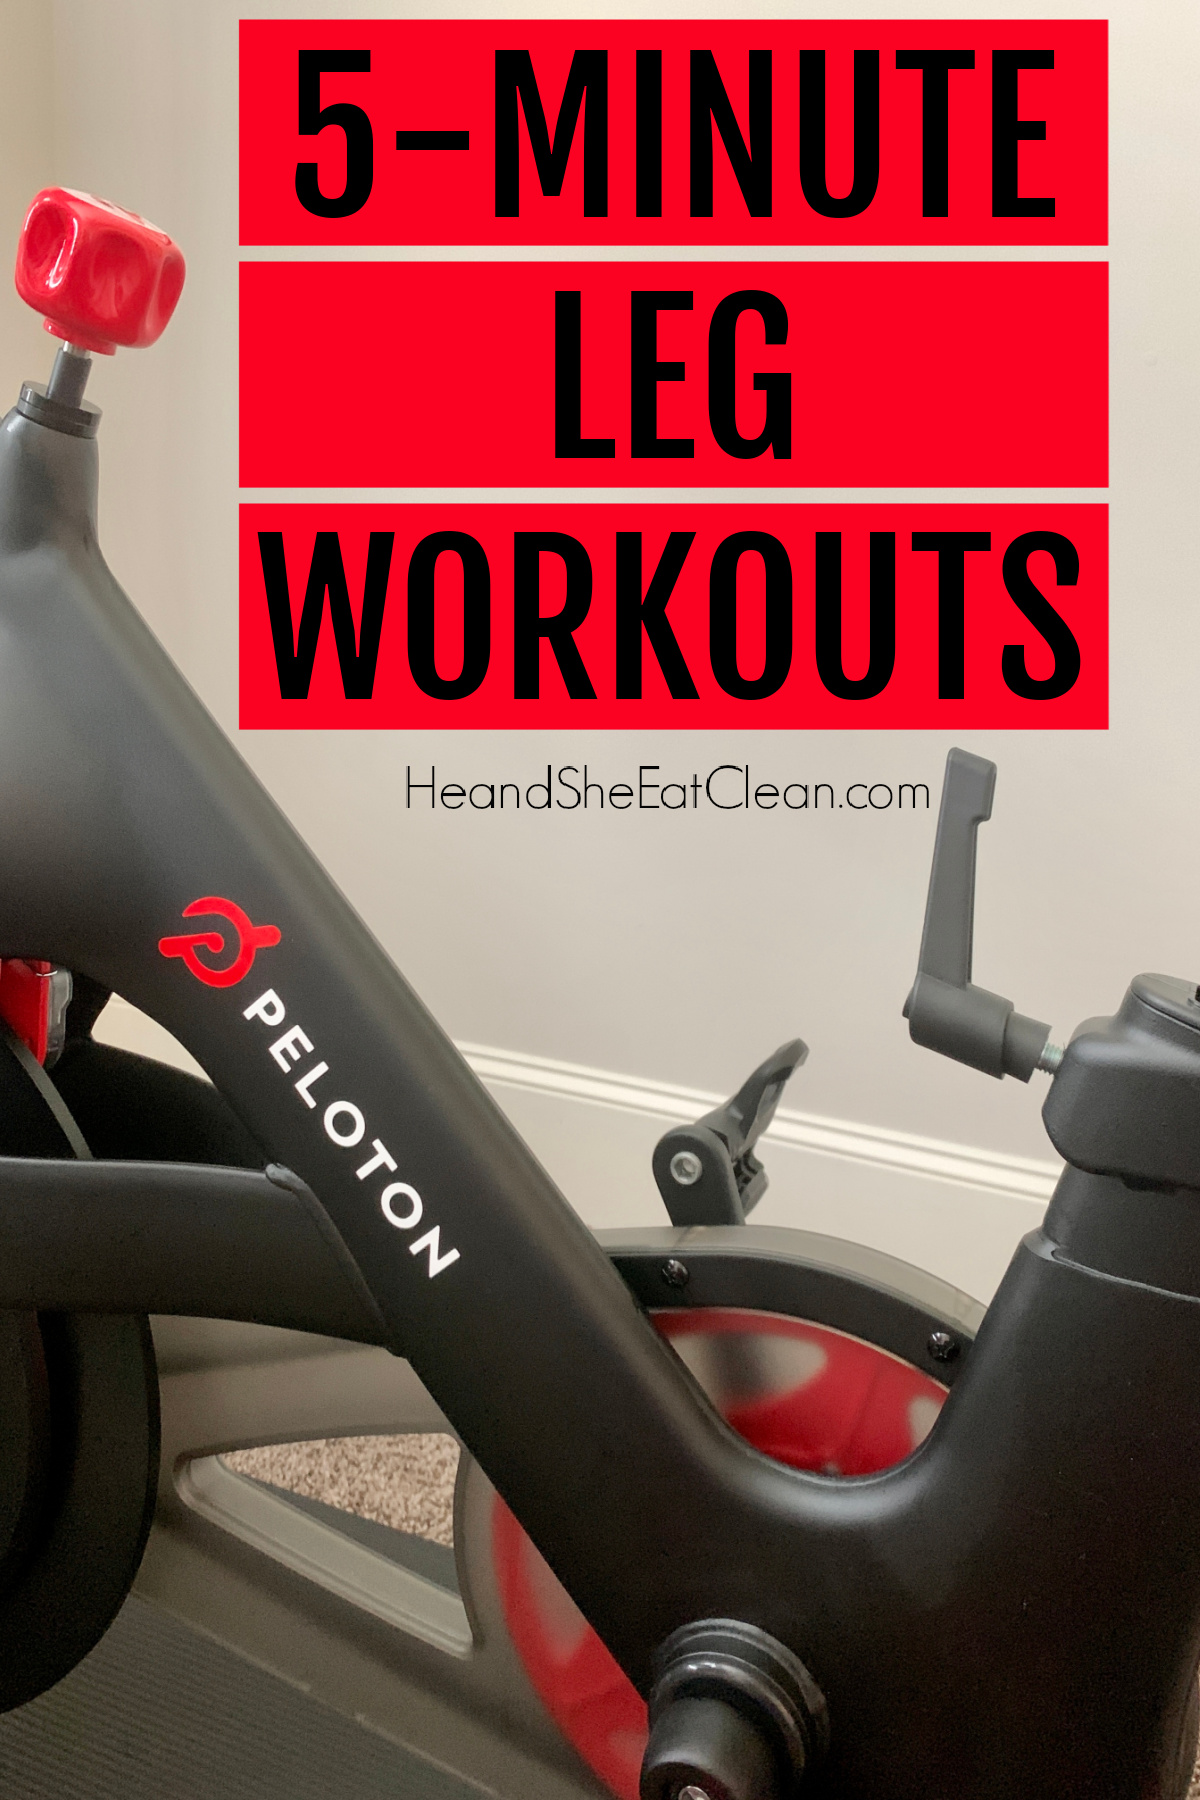 Peloton bike in the background with text that reads 5-Minute Leg Workouts highlighted in red